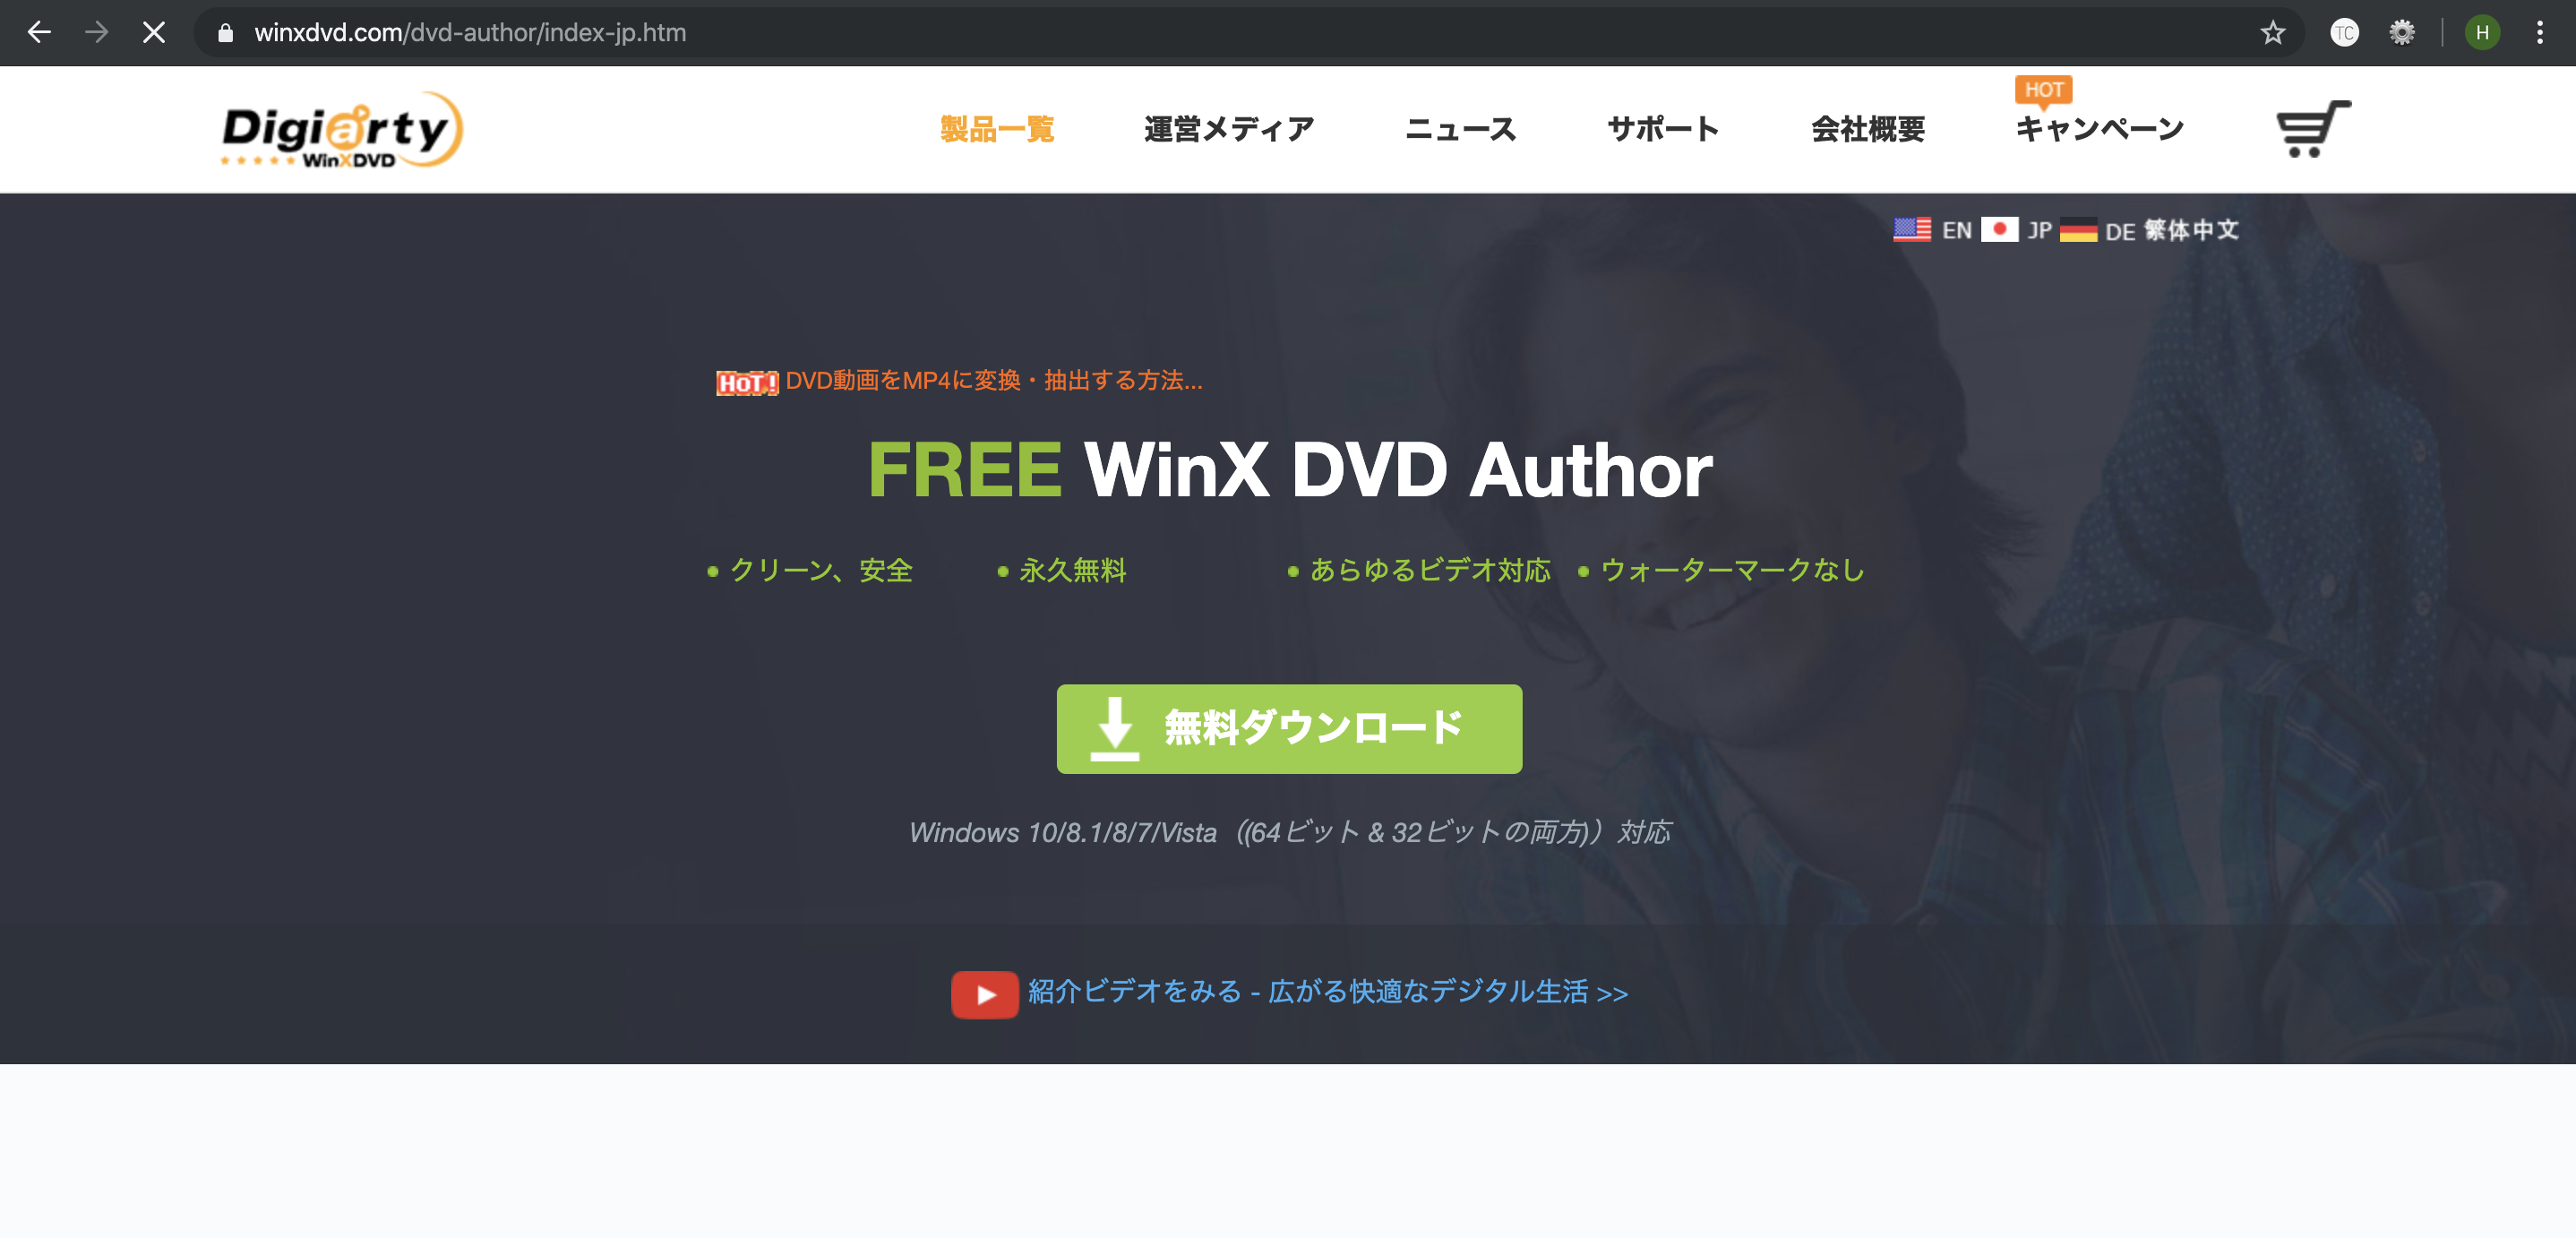 WinX DVD Authorの画像